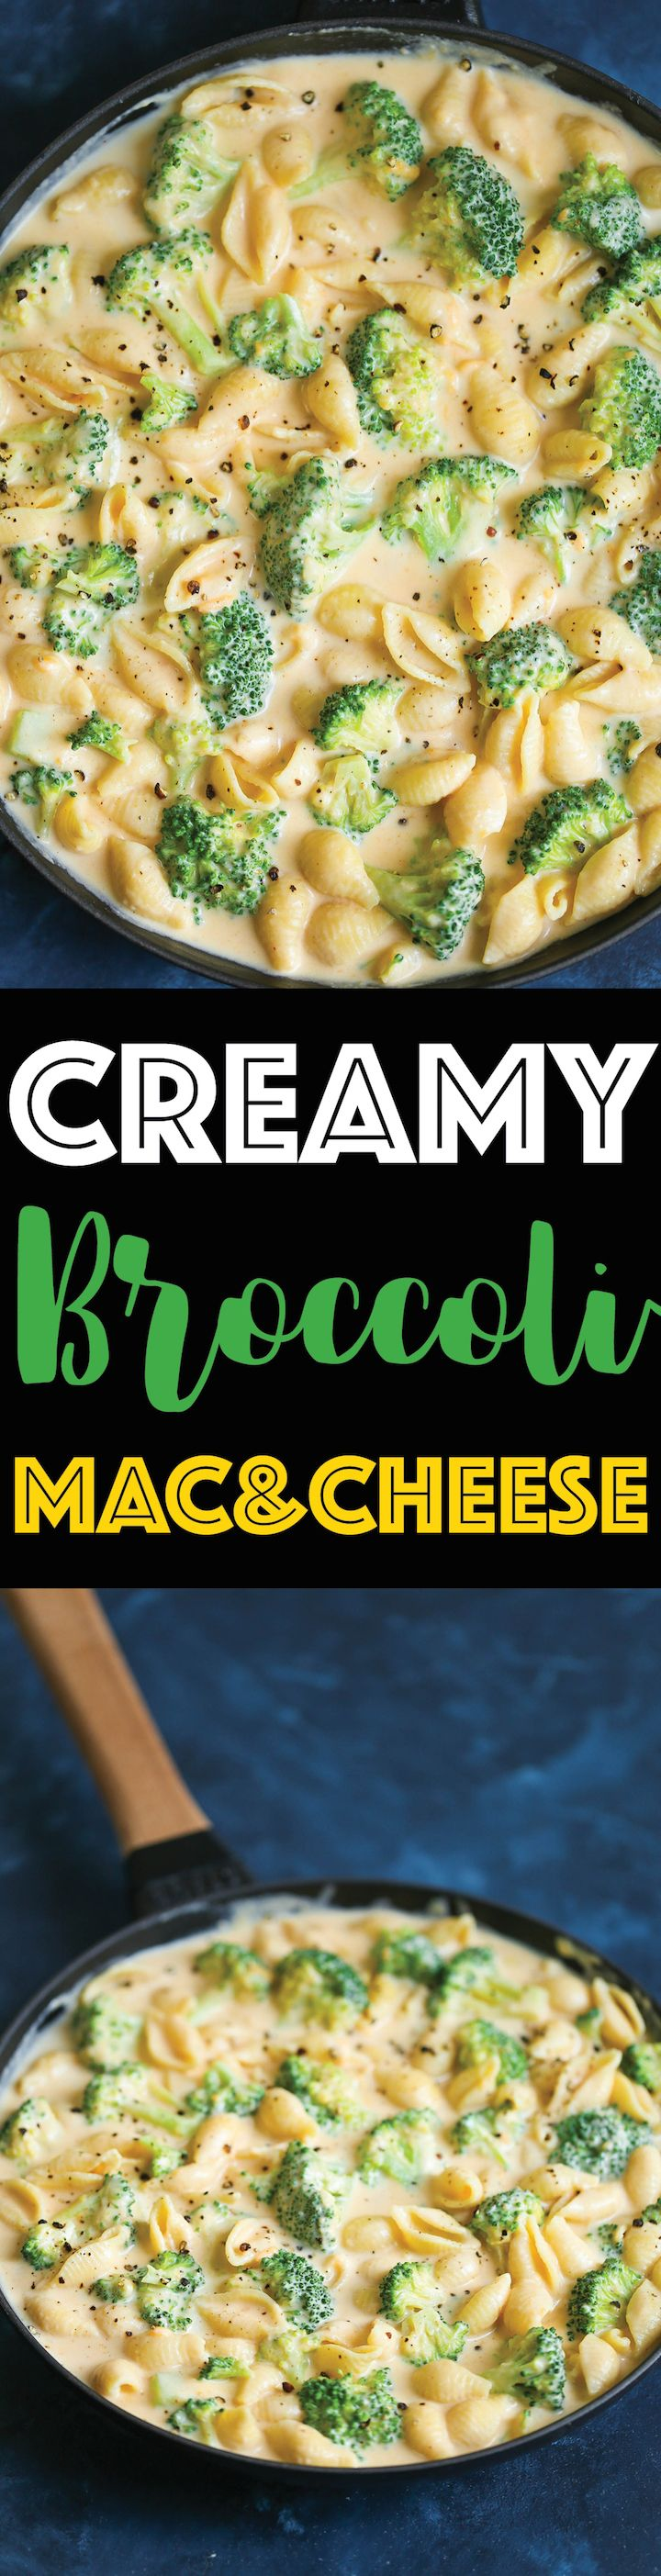 Creamy Broccoli Mac and Cheese - The EASIEST and CREAMIEST mac and cheese made in less than 30 min! Comfort food perfection! And it is the perfect way to sneak in those greens!